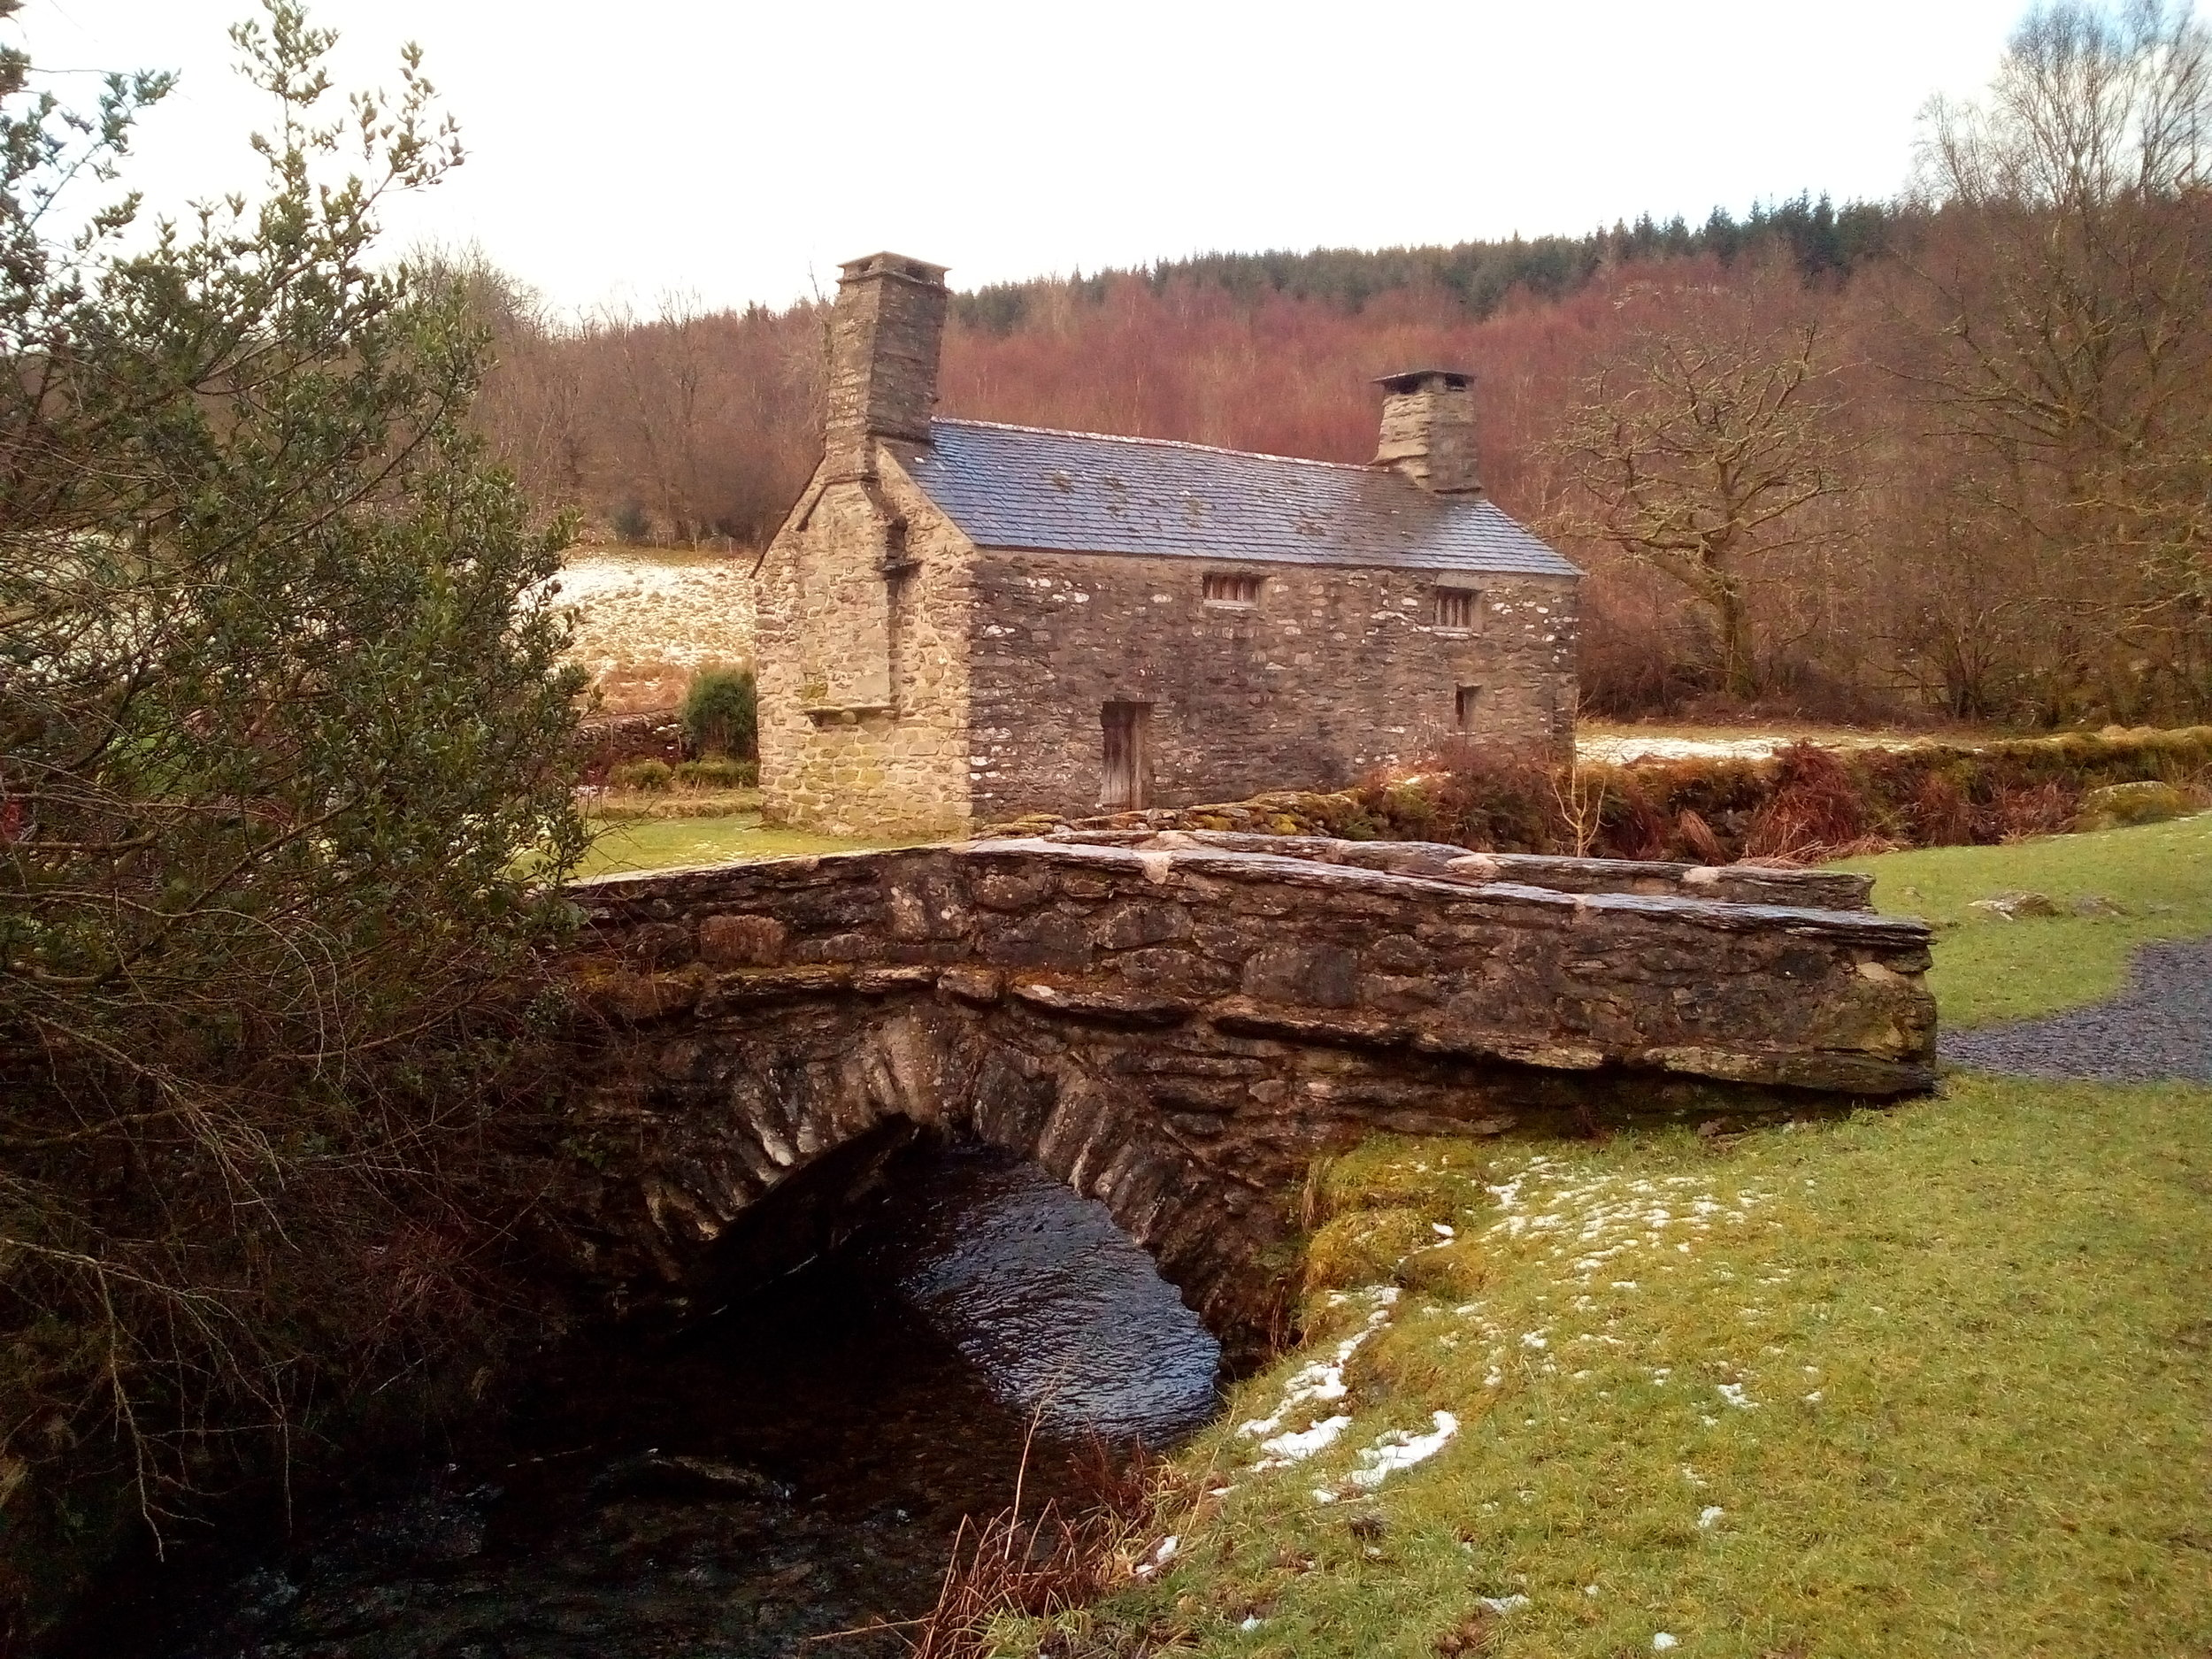 View of the historical farmhouse from the powerhouse.